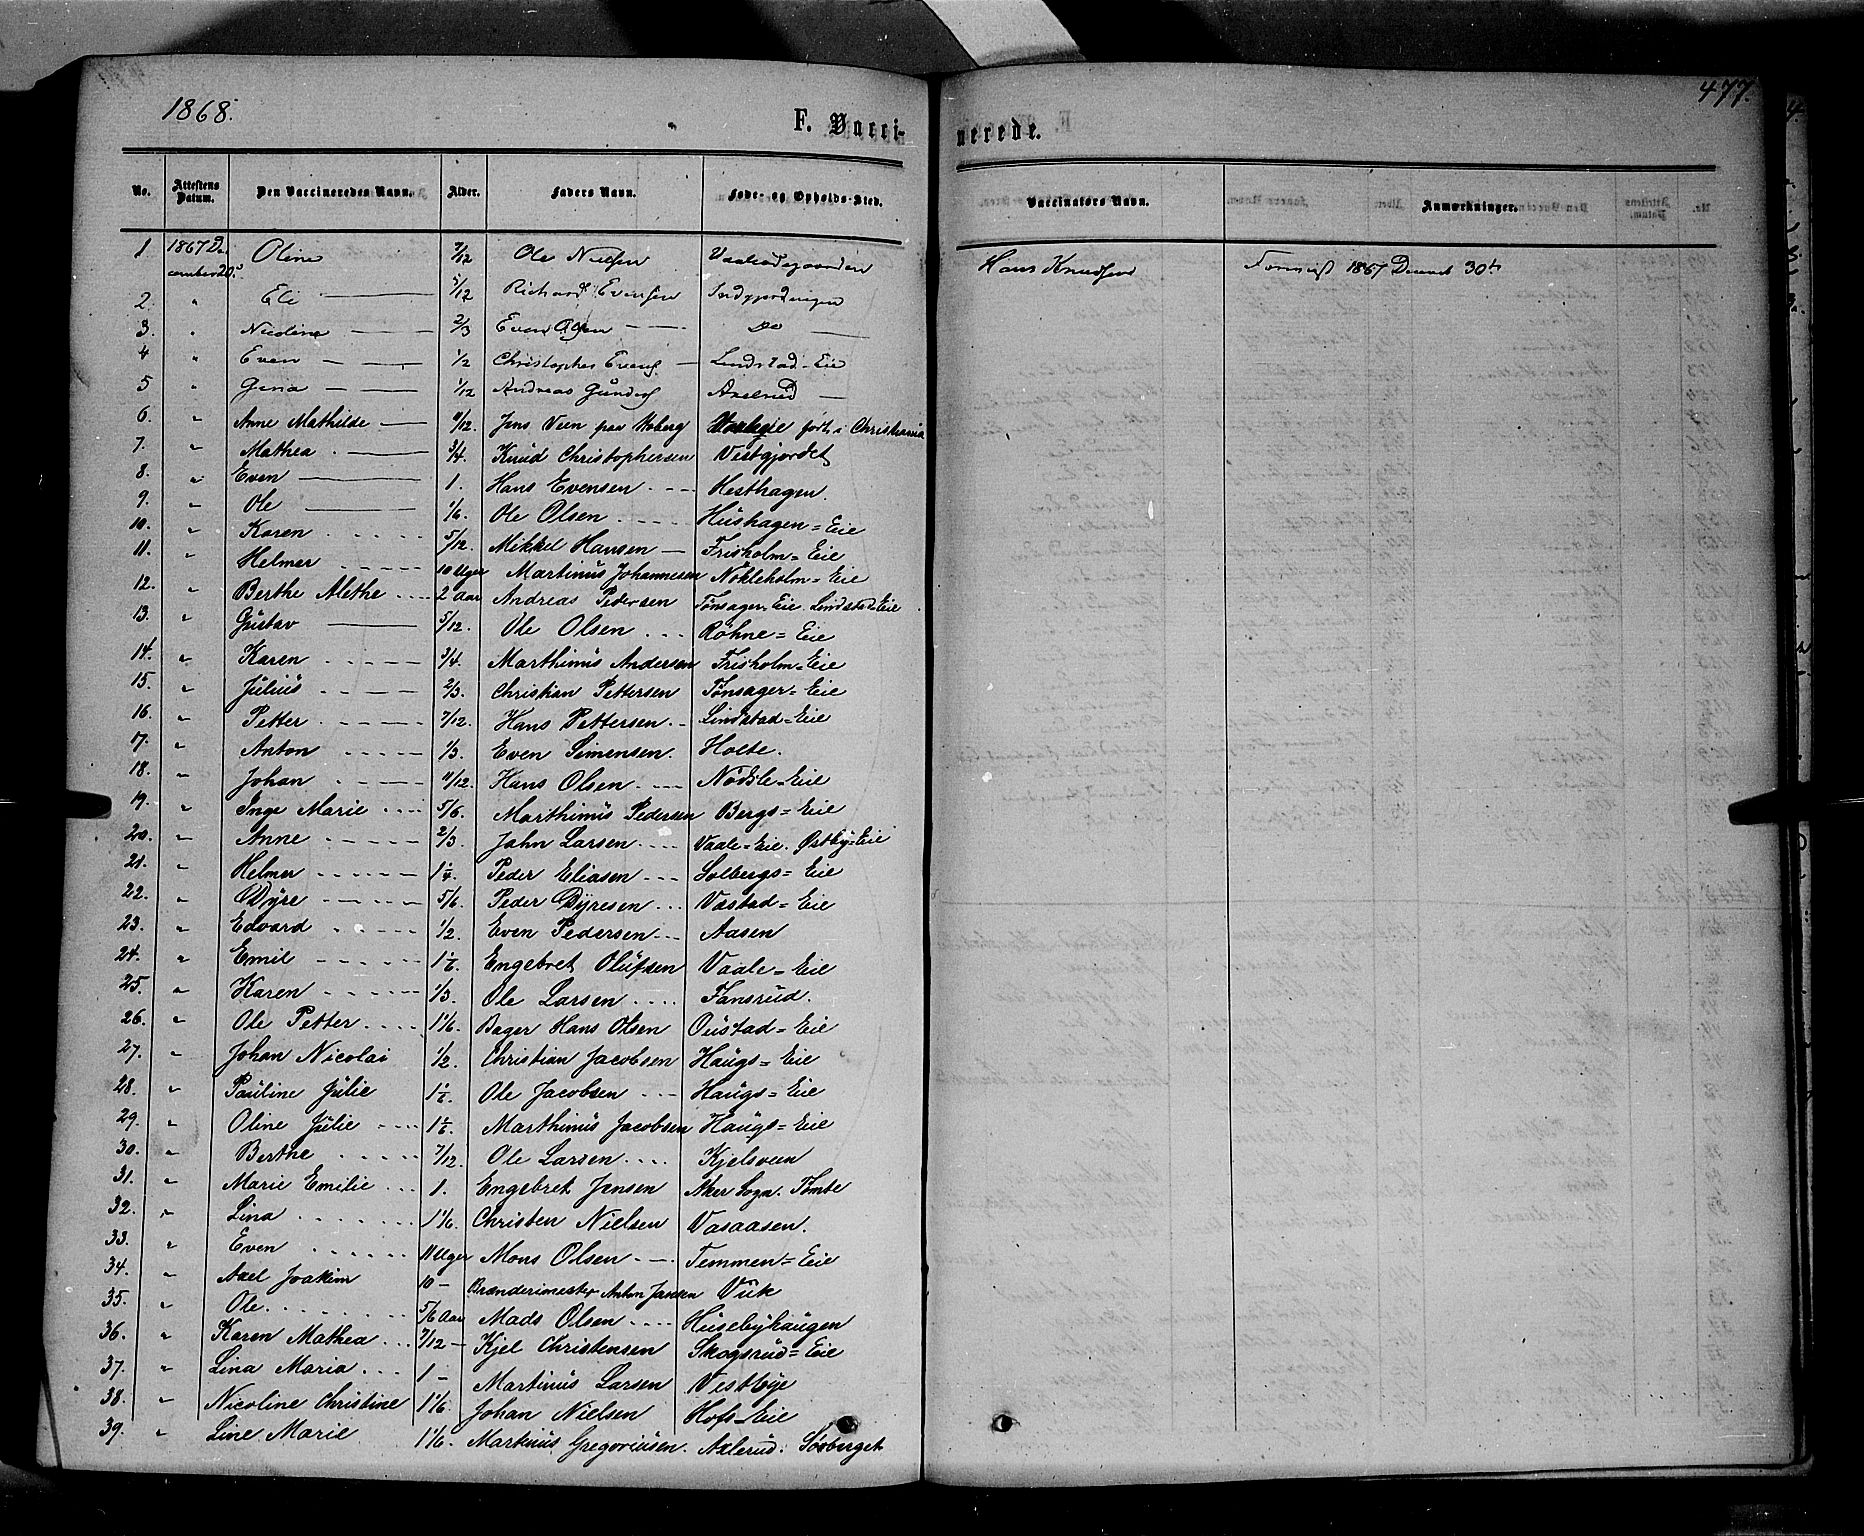 SAH, Stange prestekontor, K/L0013: Parish register (official) no. 13, 1862-1879, p. 477